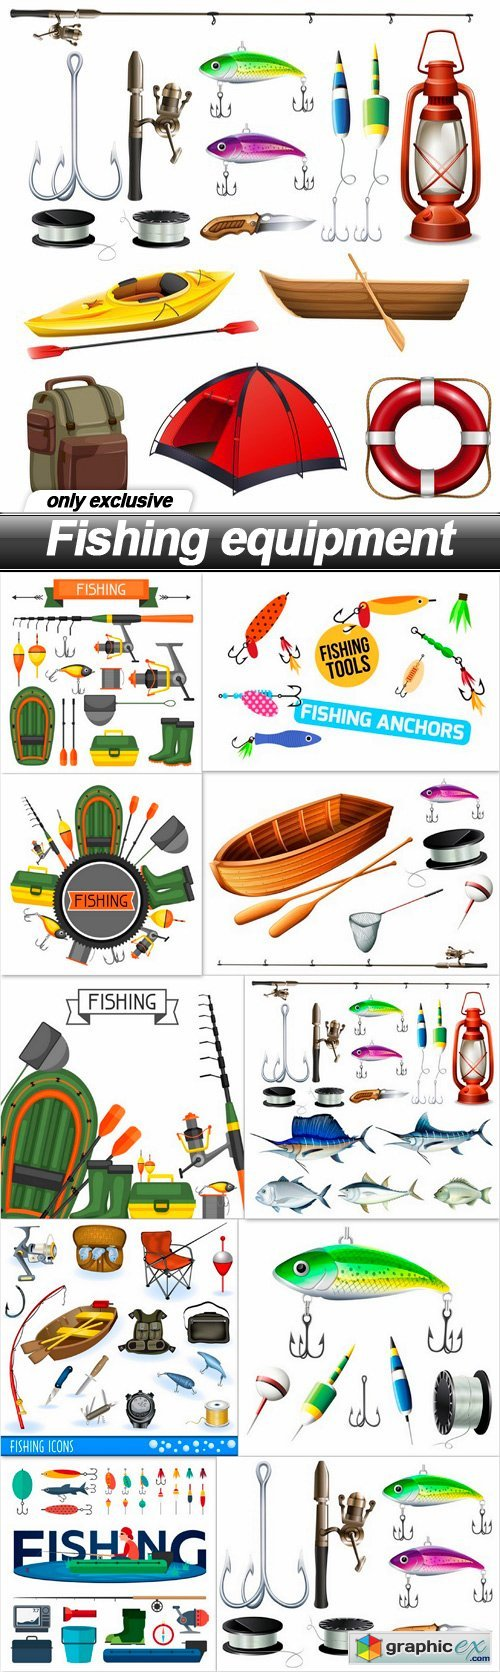 Fishing equipment - 11 EPS